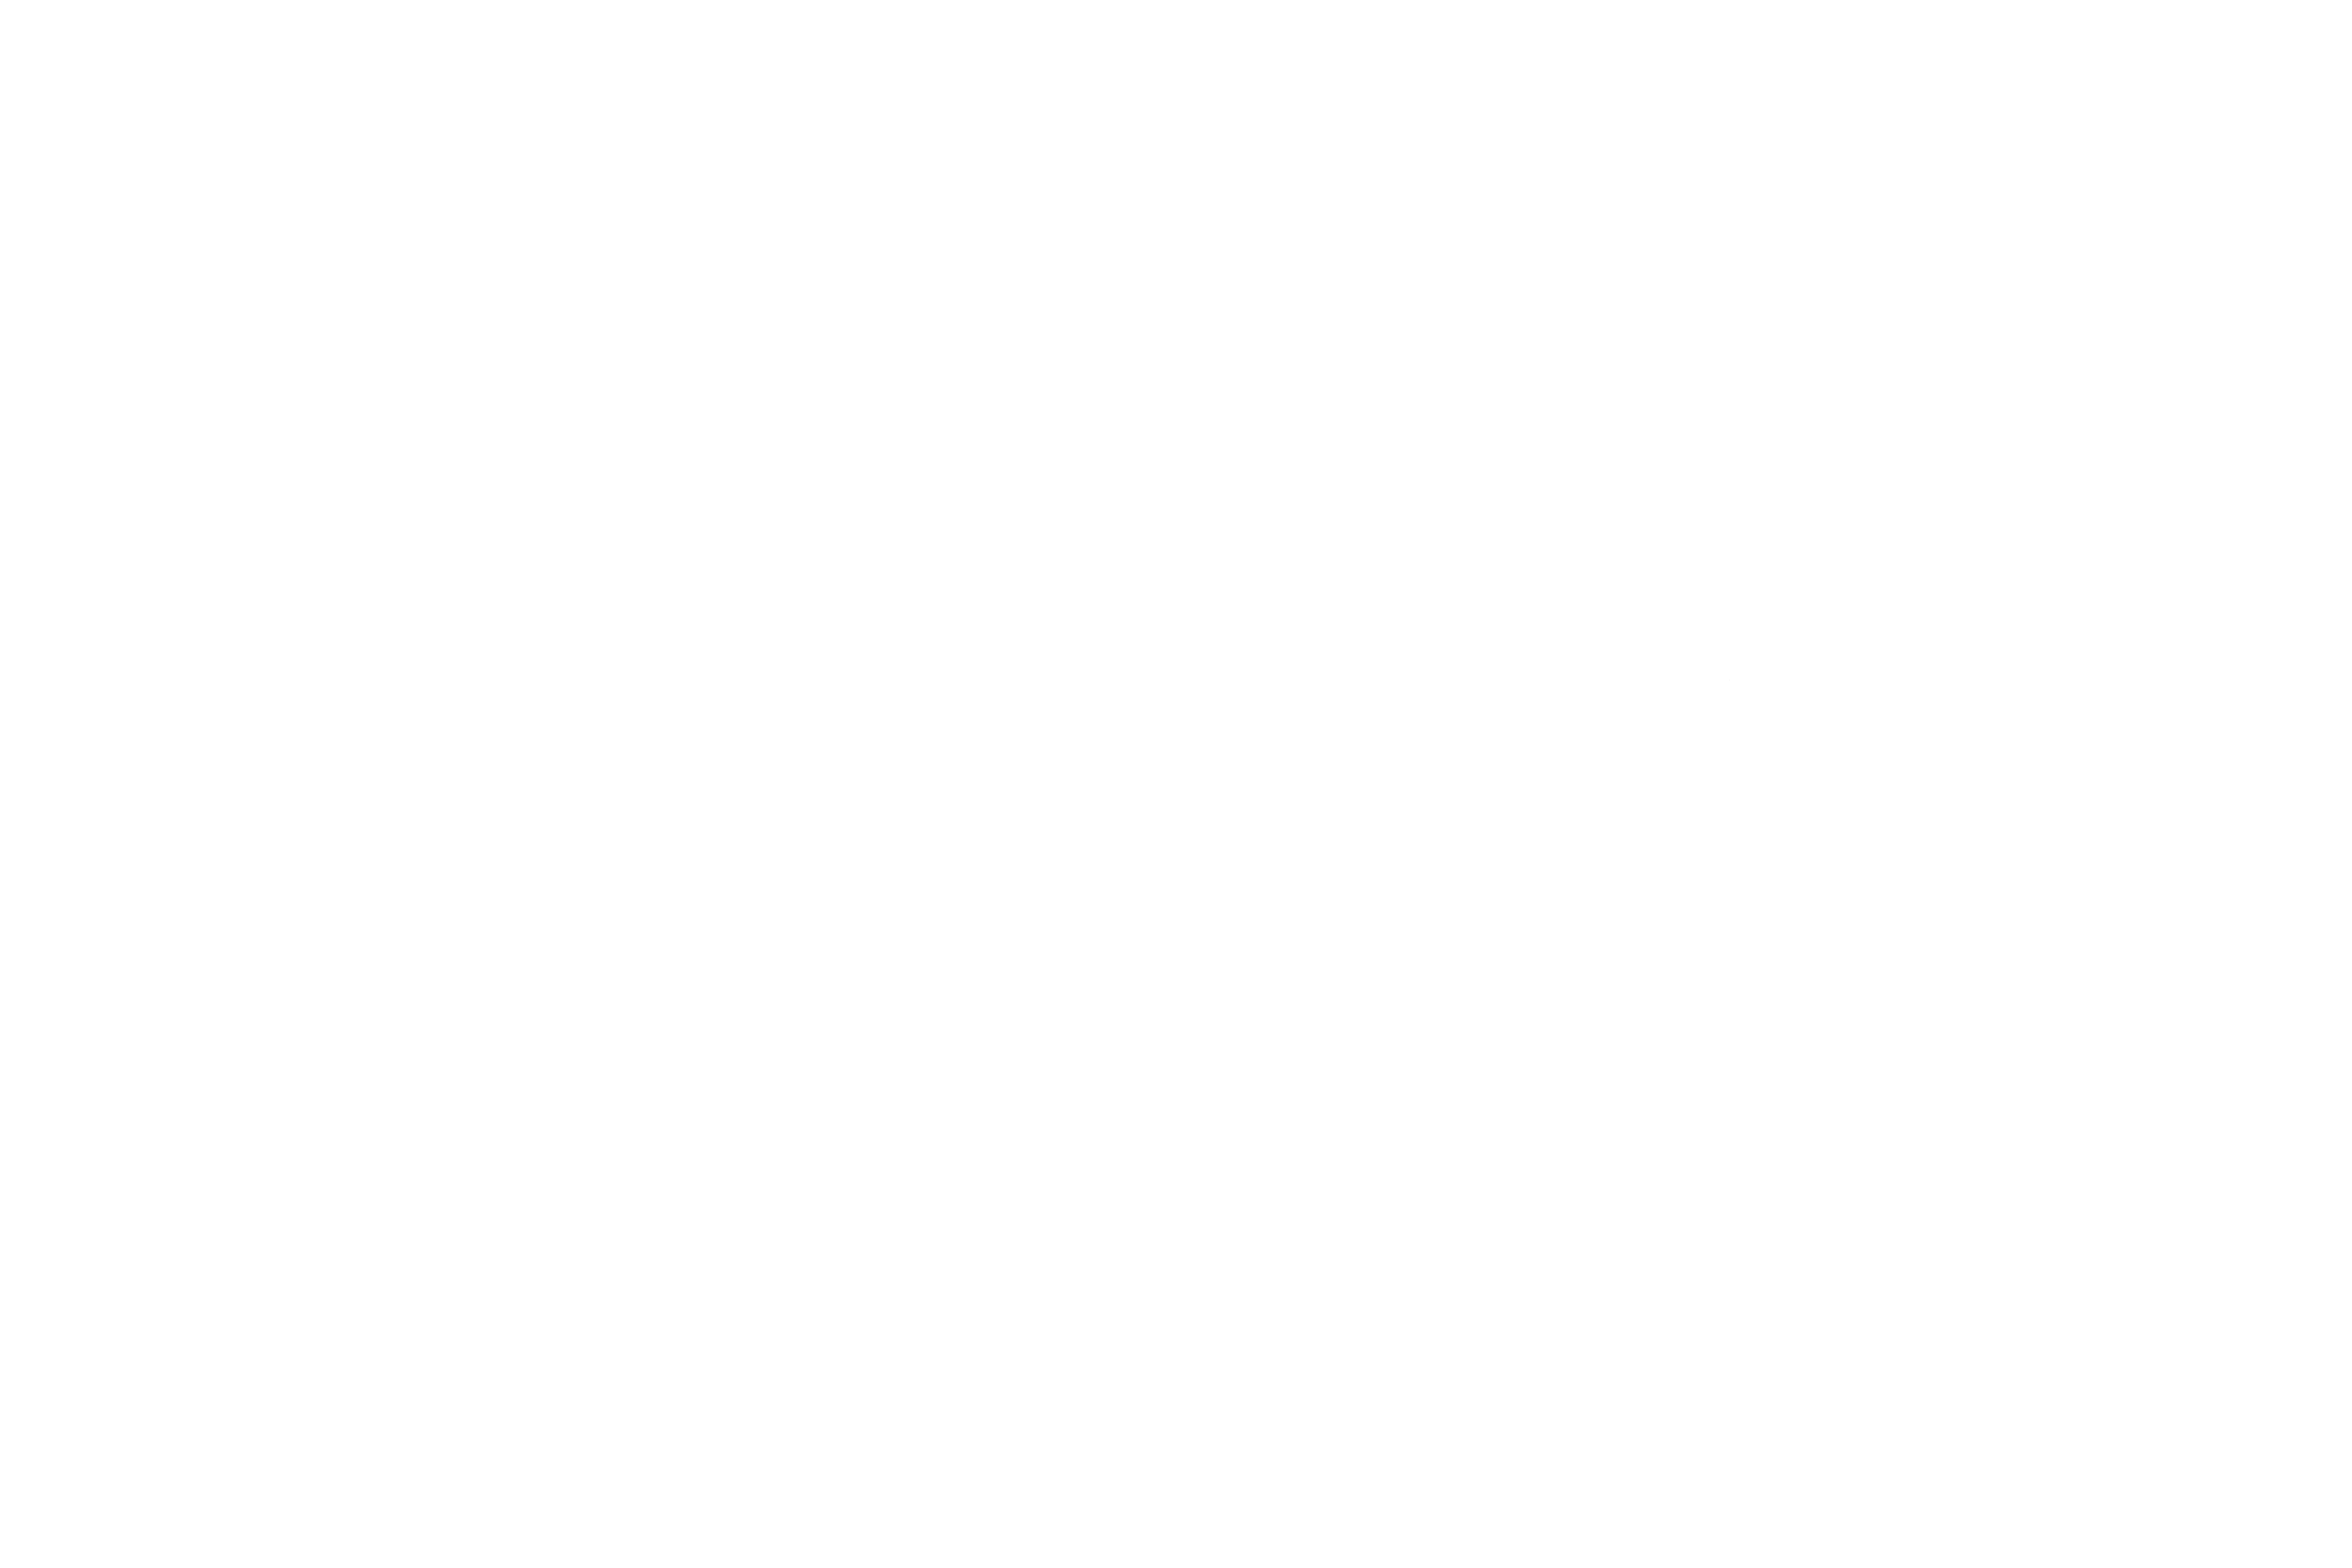 Epic Moments Photography